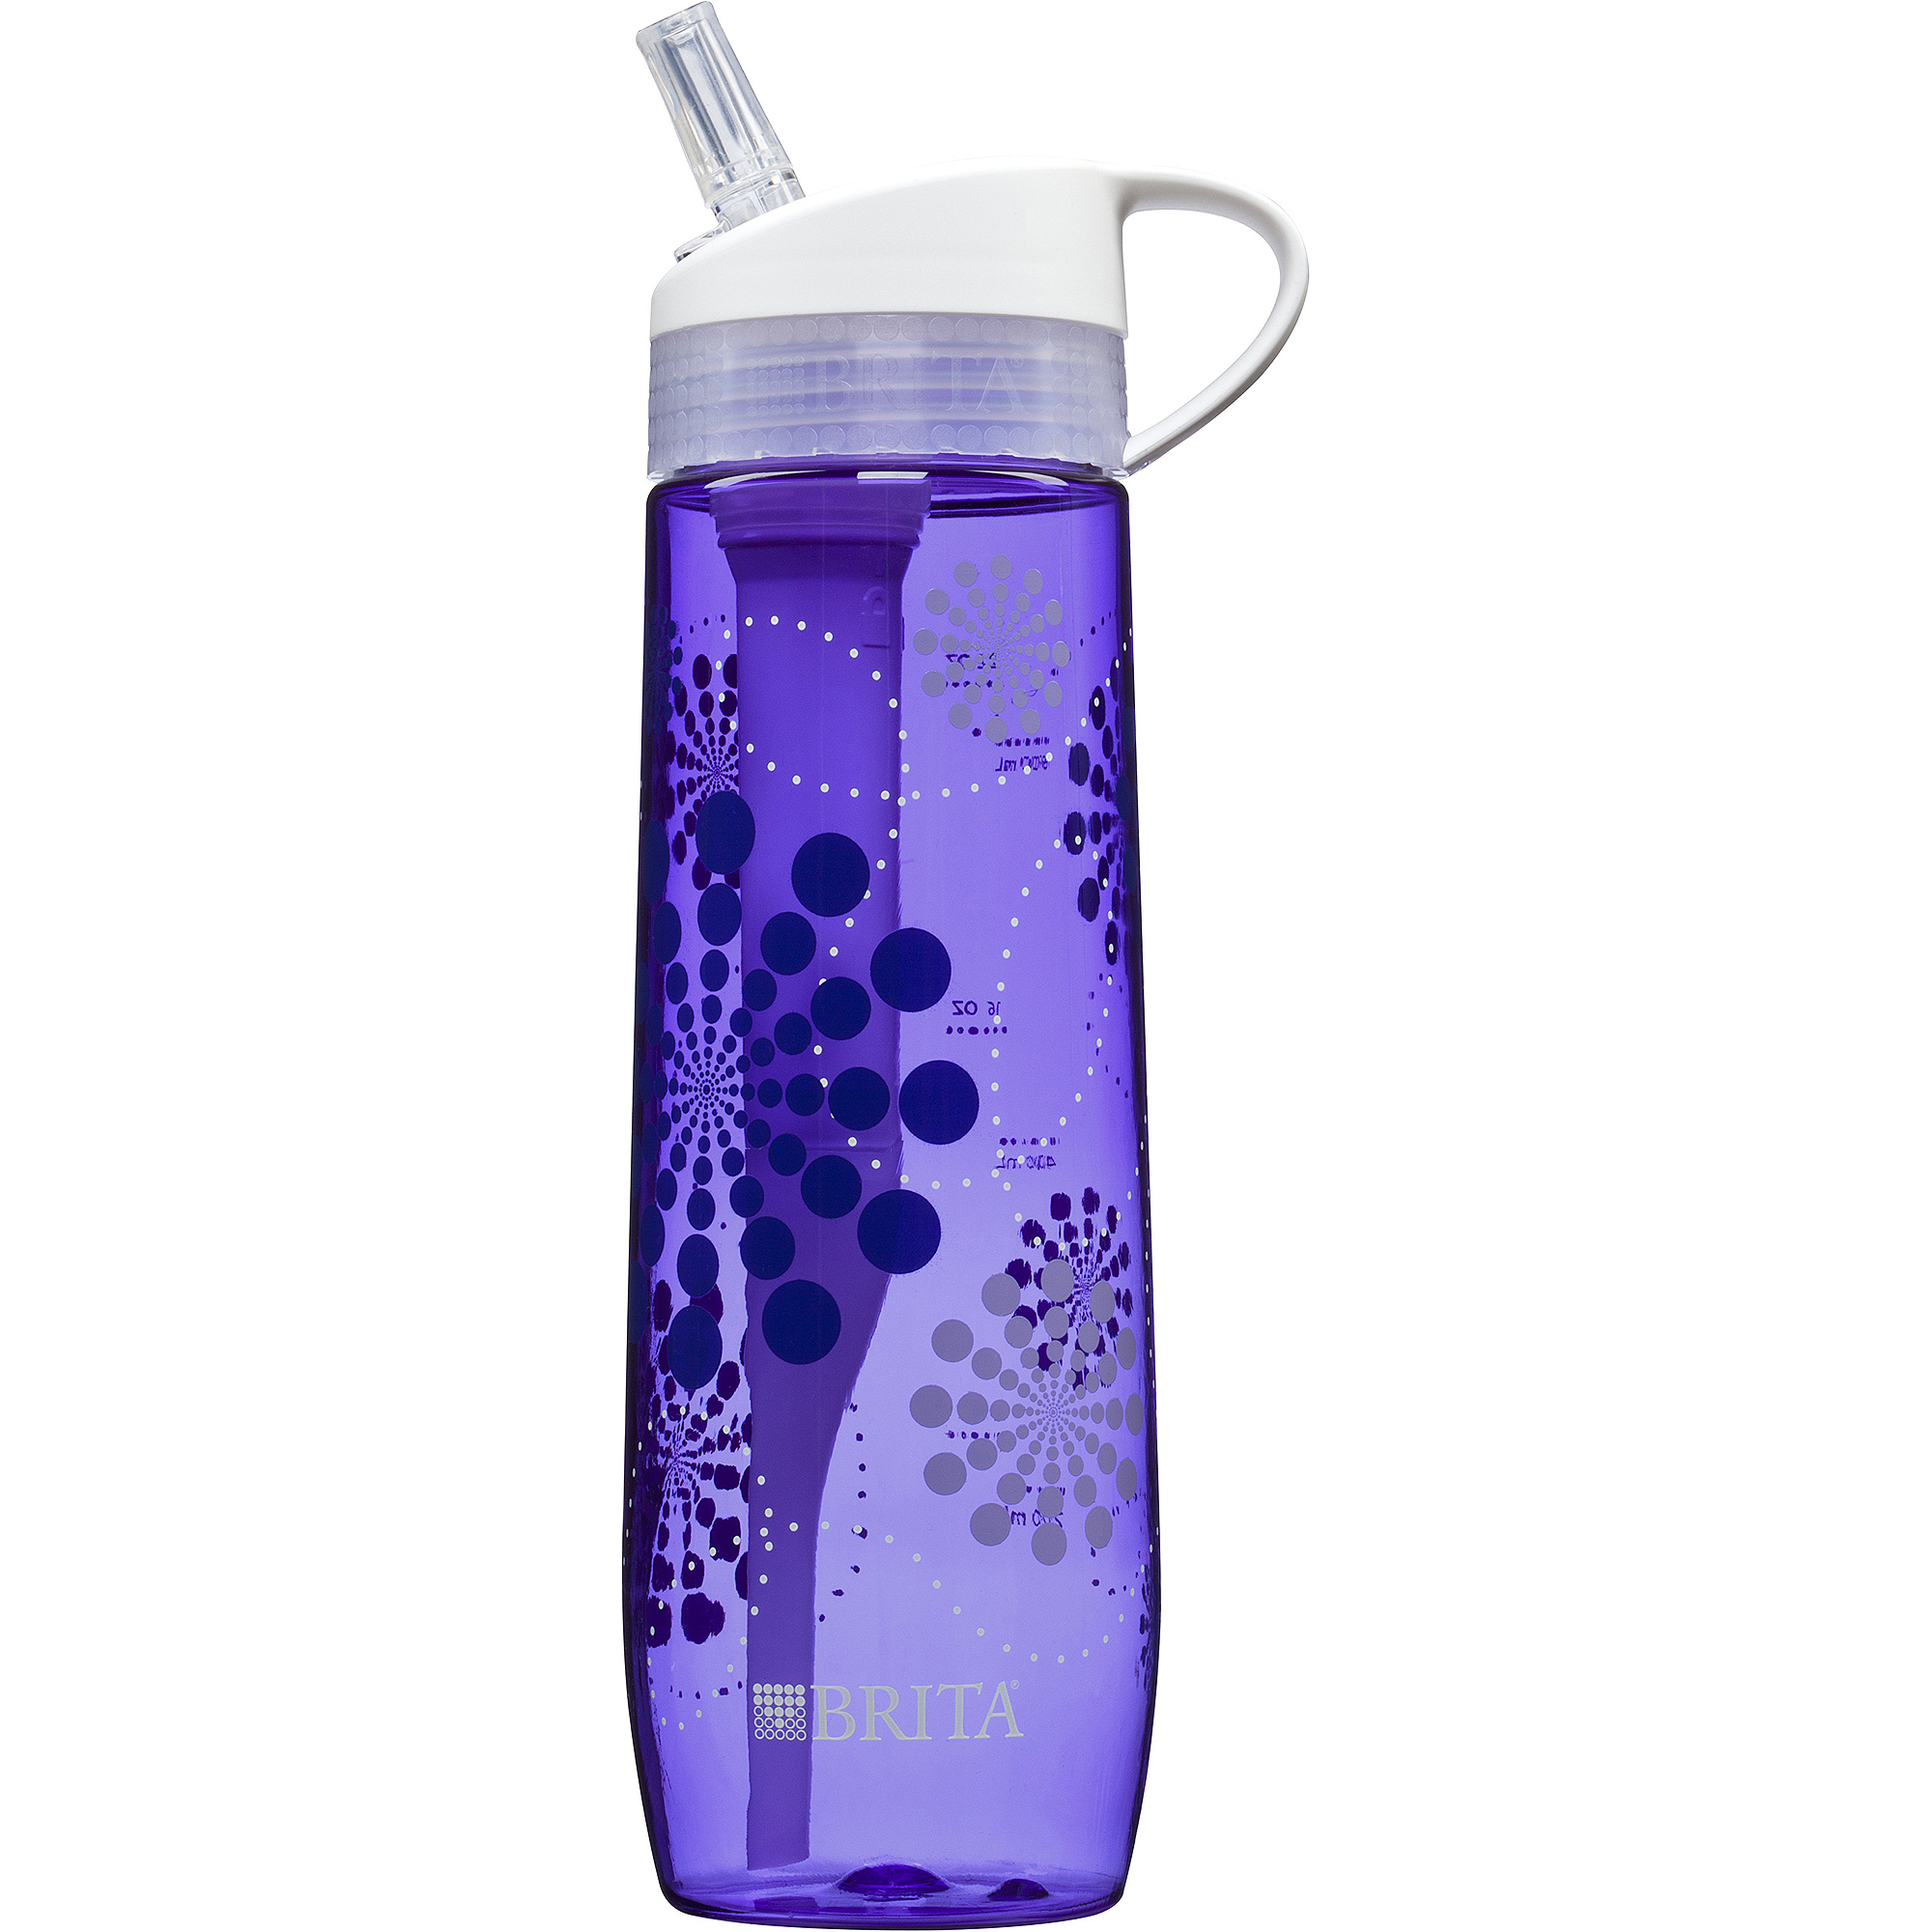 Brita Hard Sided Water Filter Bottle, Violet, 23.7 oz by The Clorox Company